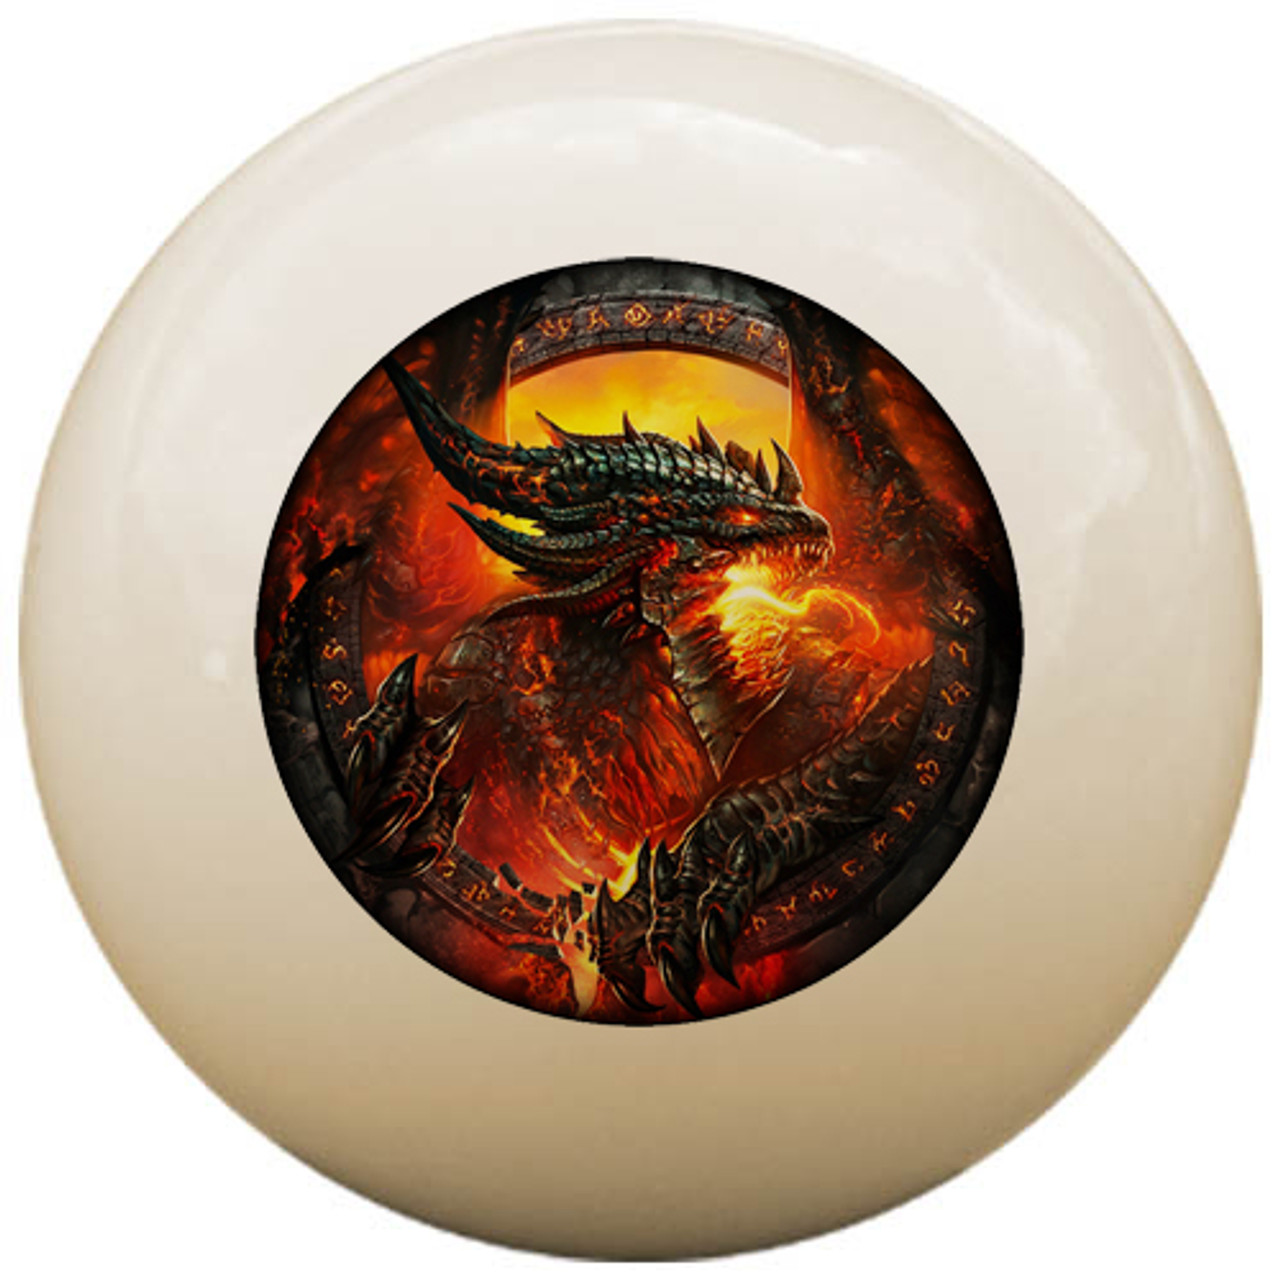 Custom Pool Cue Ball - Fire Breathing Dragon